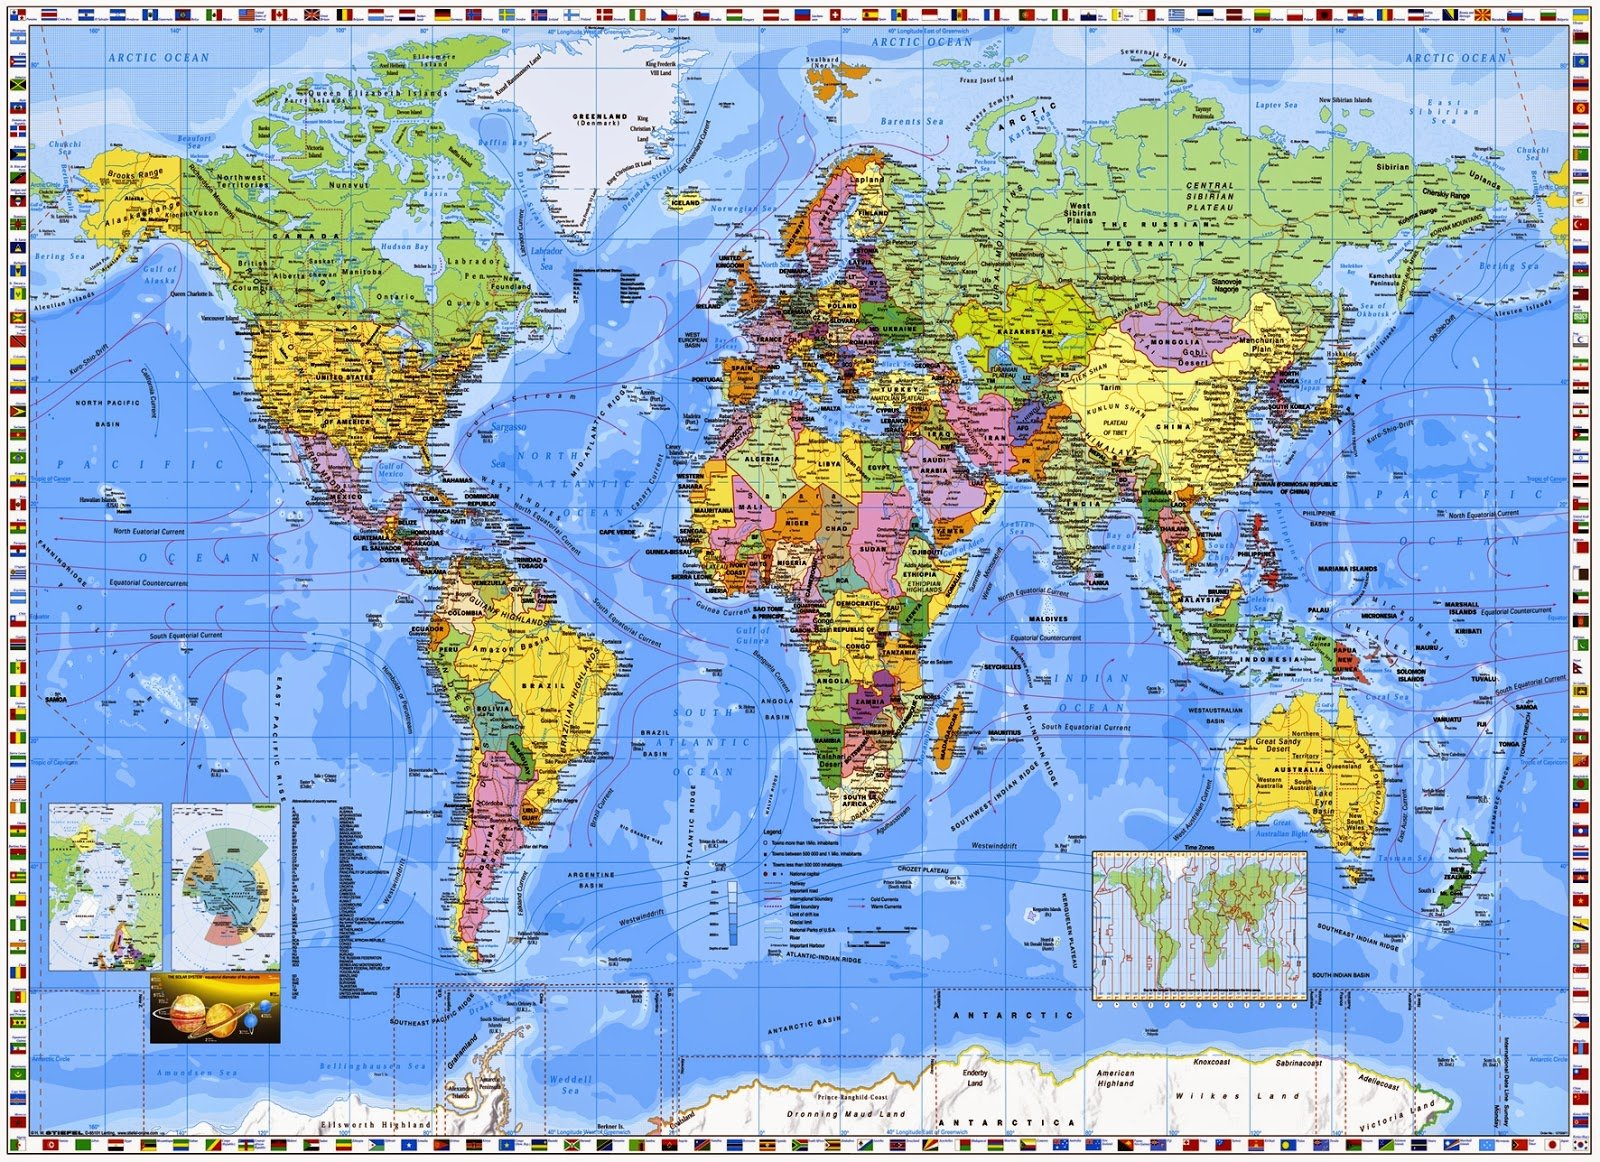 World map desktop wallpaper hd wallpapersafari world map wallpaper for walls world map desktop wallpaper world map 1600x1162 gumiabroncs Gallery